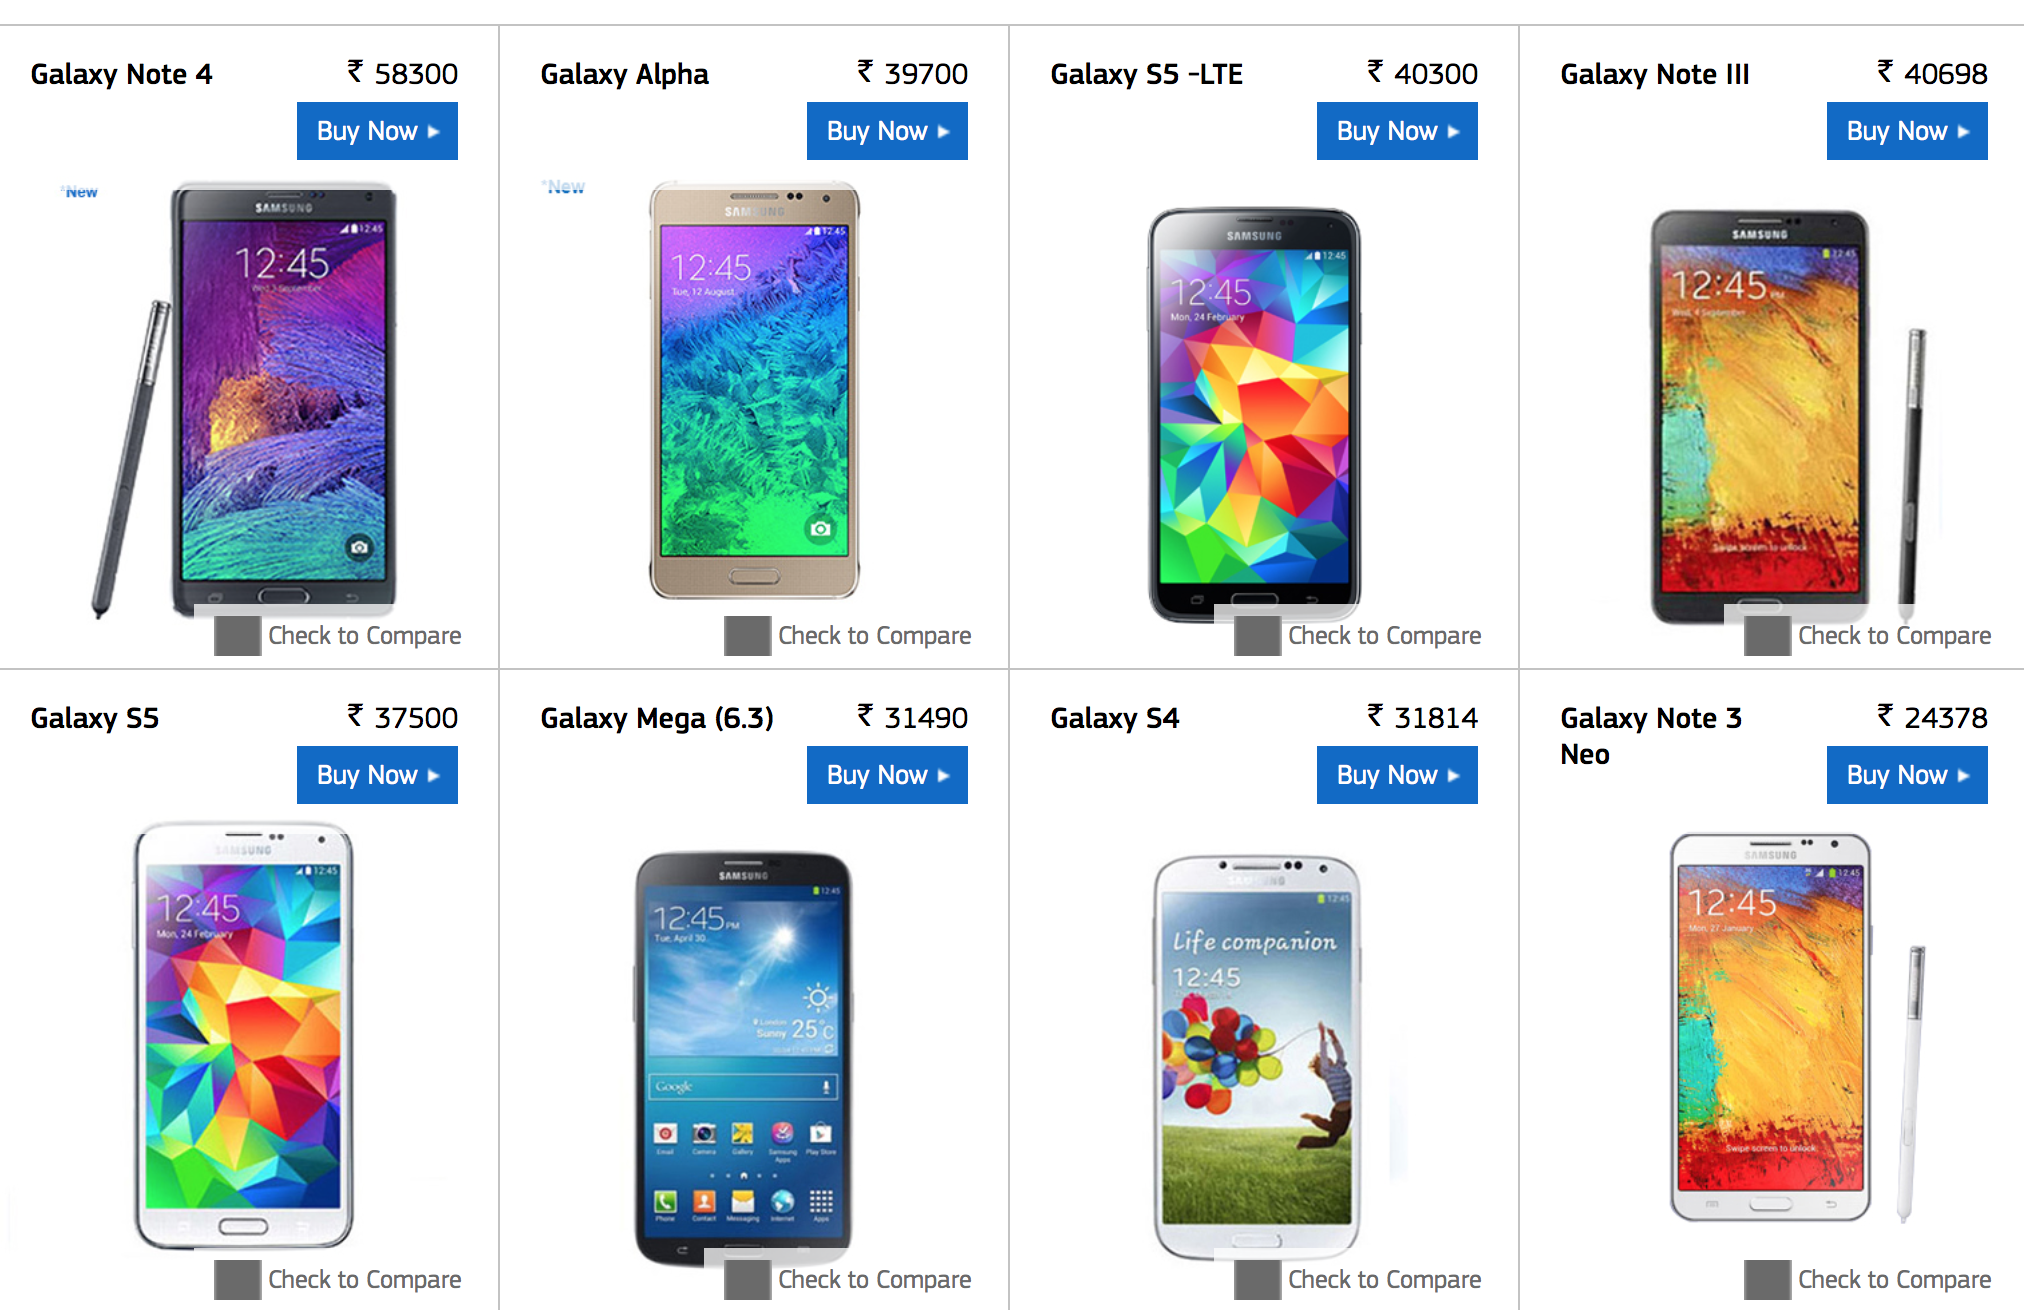 Samsung All Galaxy Phones Price In India 2014 Samsung ...